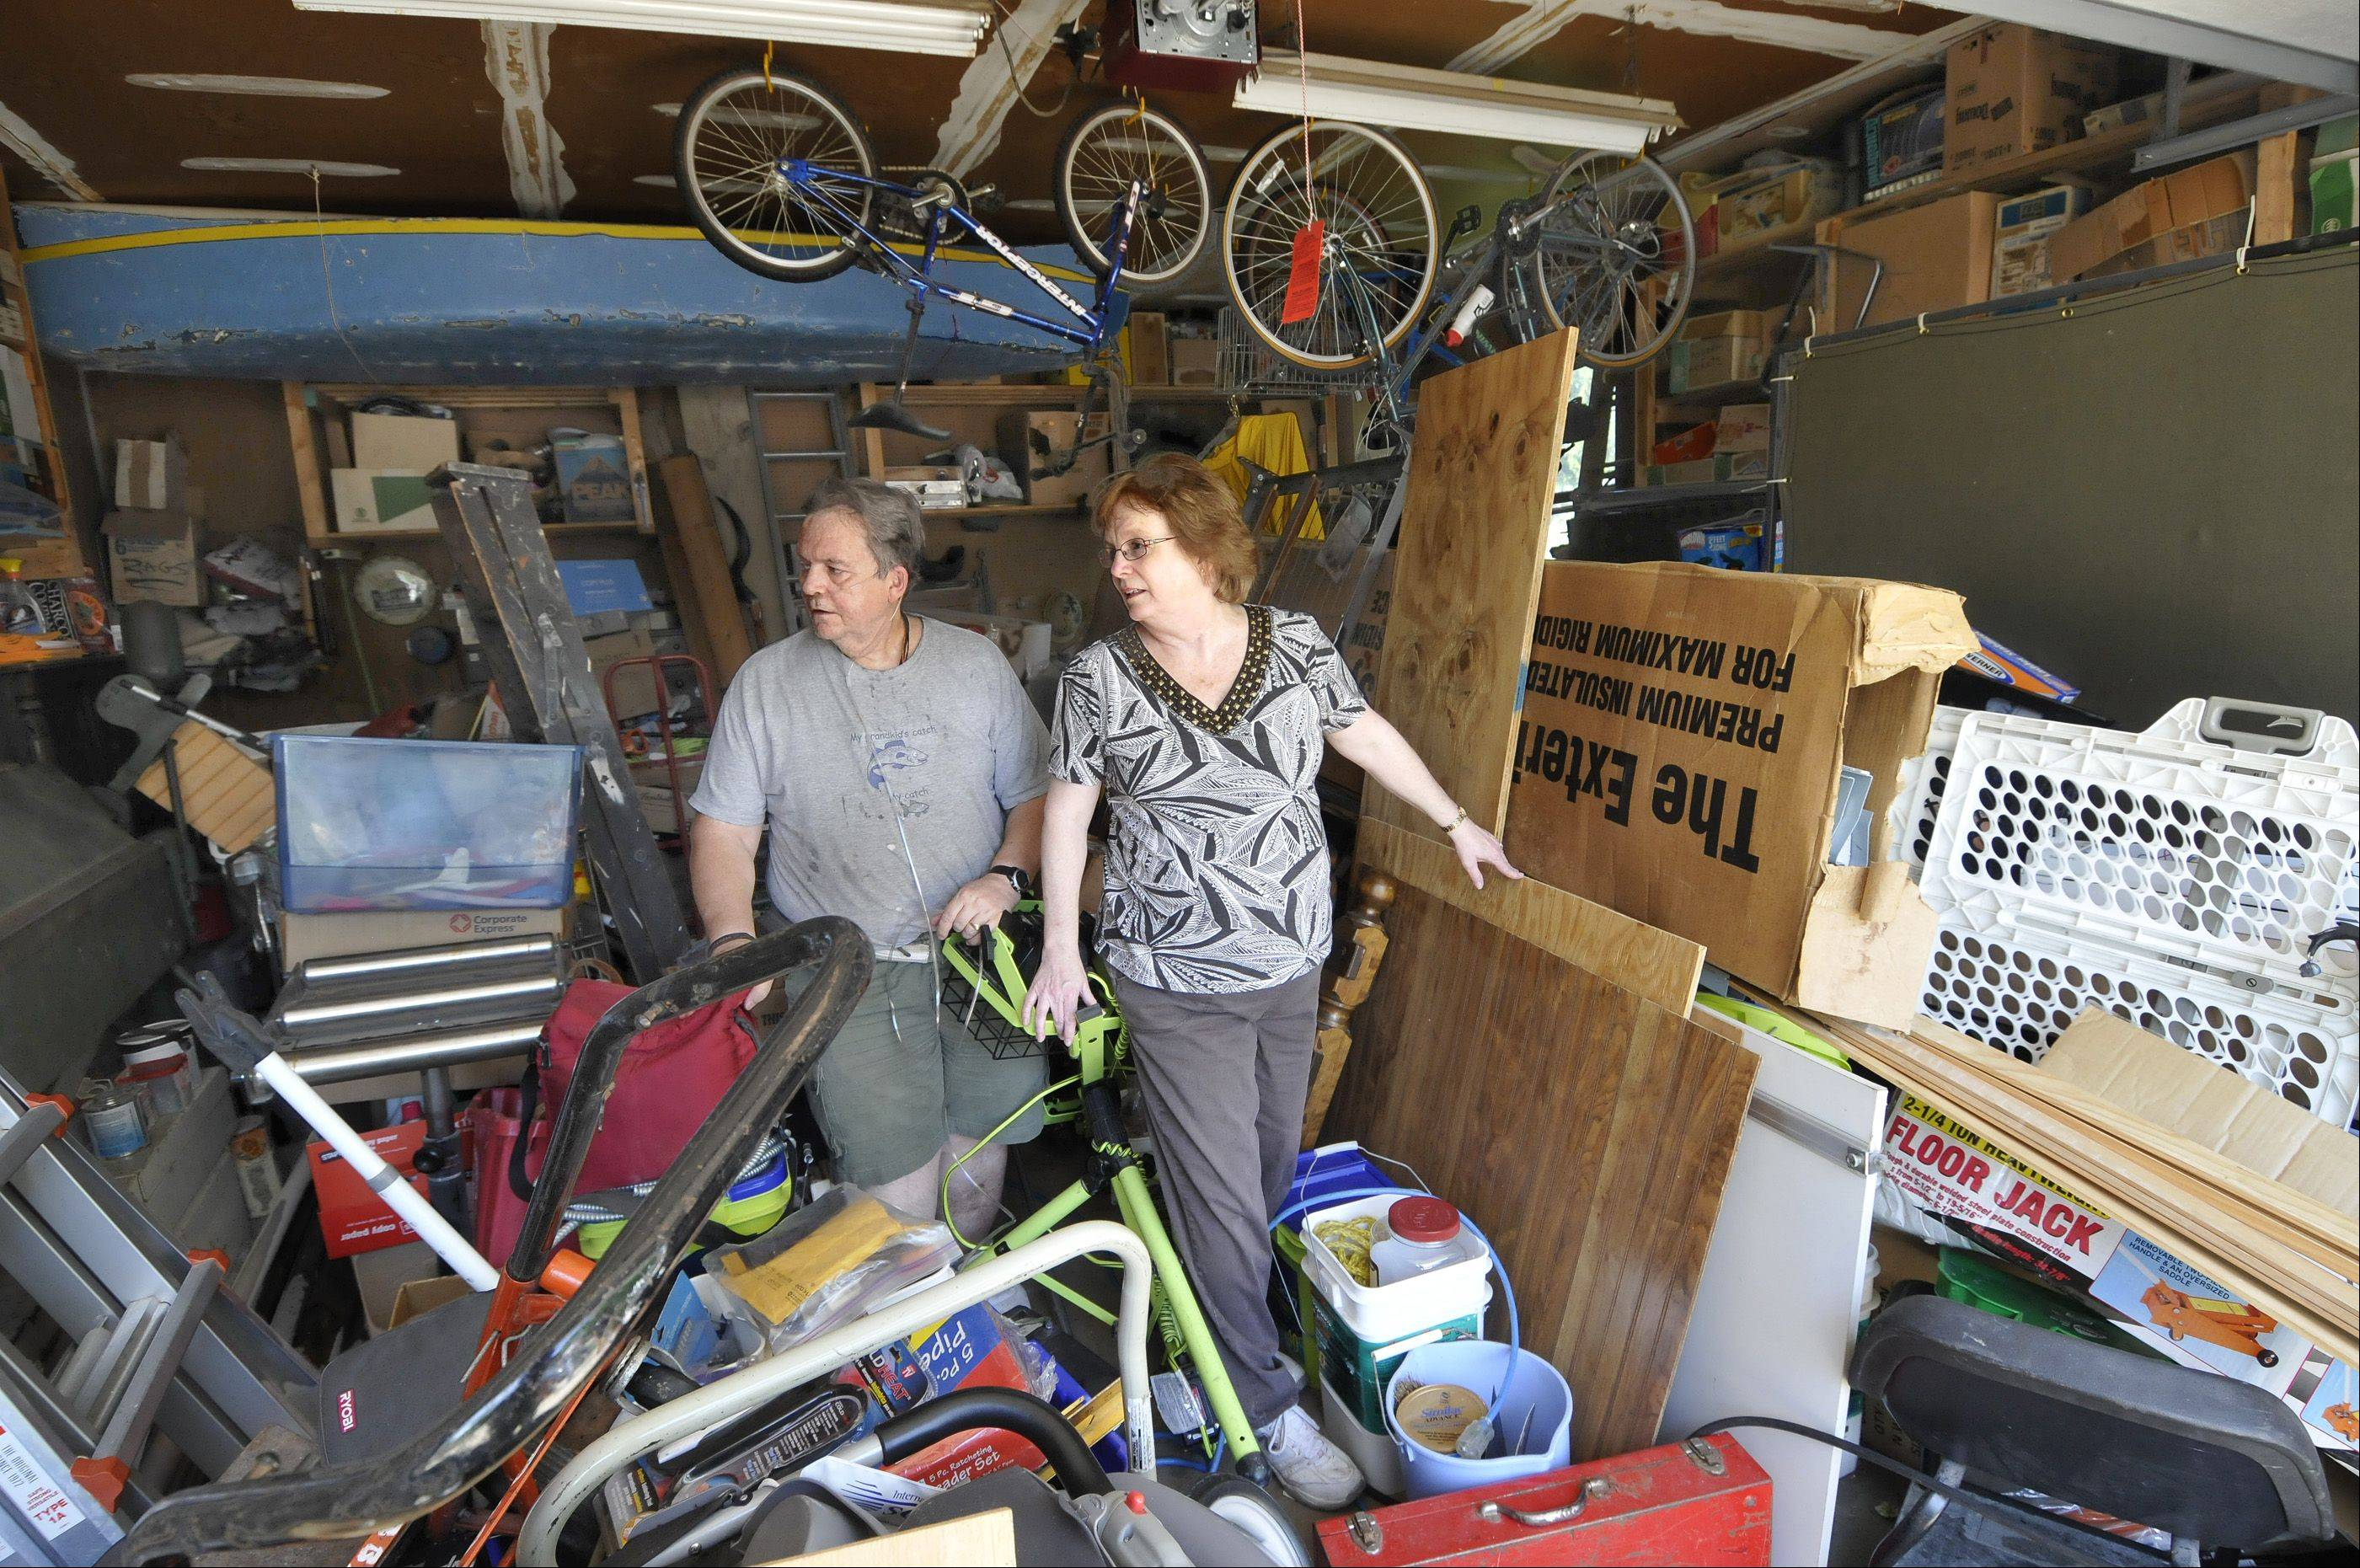 Dianne DeBellis and her husband Rob won the Daily Herald's garage makeover contest. Dianne says there are 39 years hears of stuff in the garage. Junk Remedy will clean it out and an organizer, Jim Melchert from Garage Store, will finish the job.